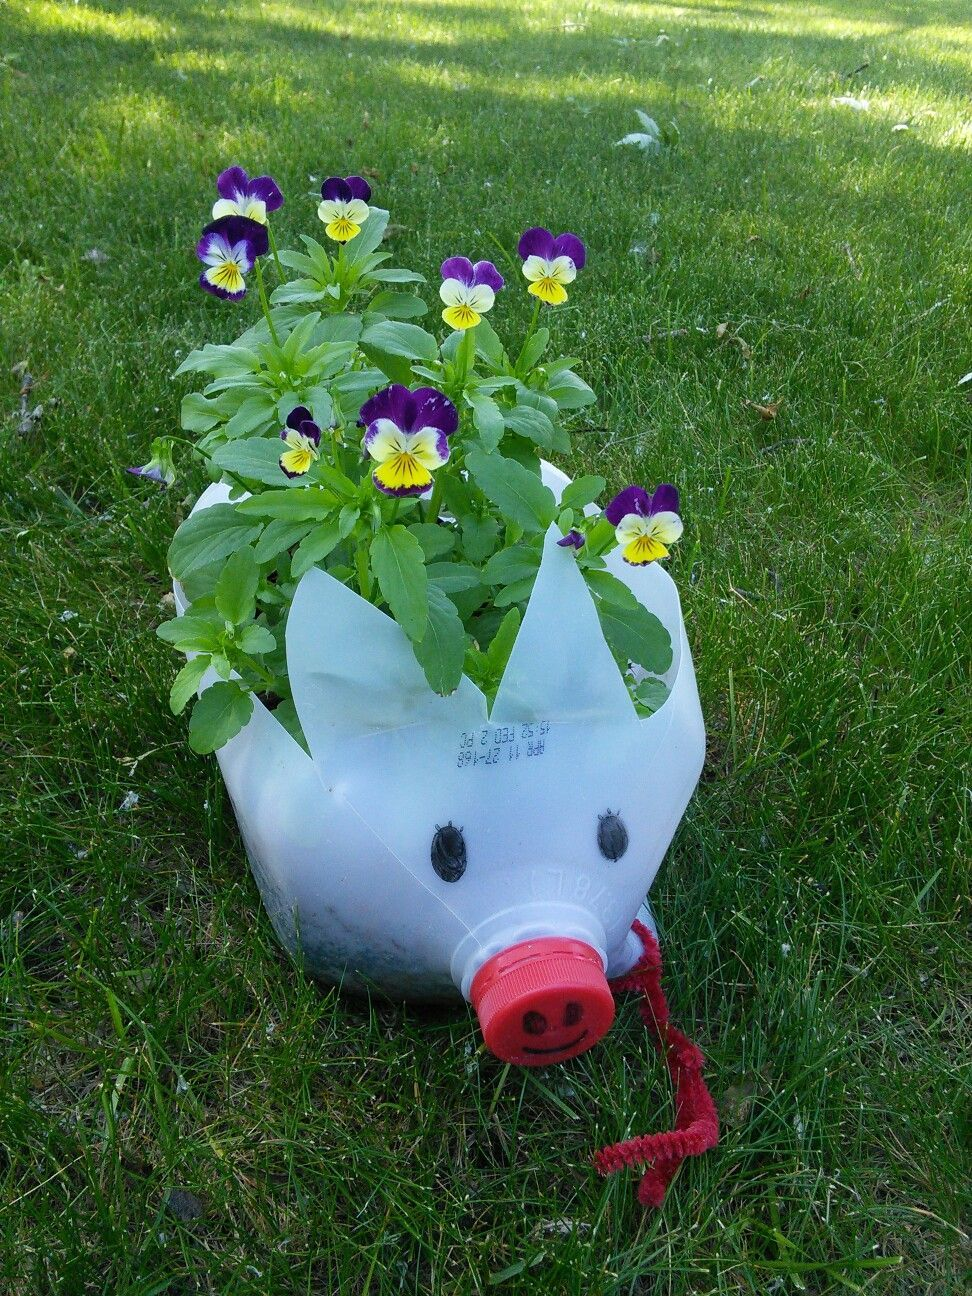 My piggy was born from a milk jug recycle a milk jug into